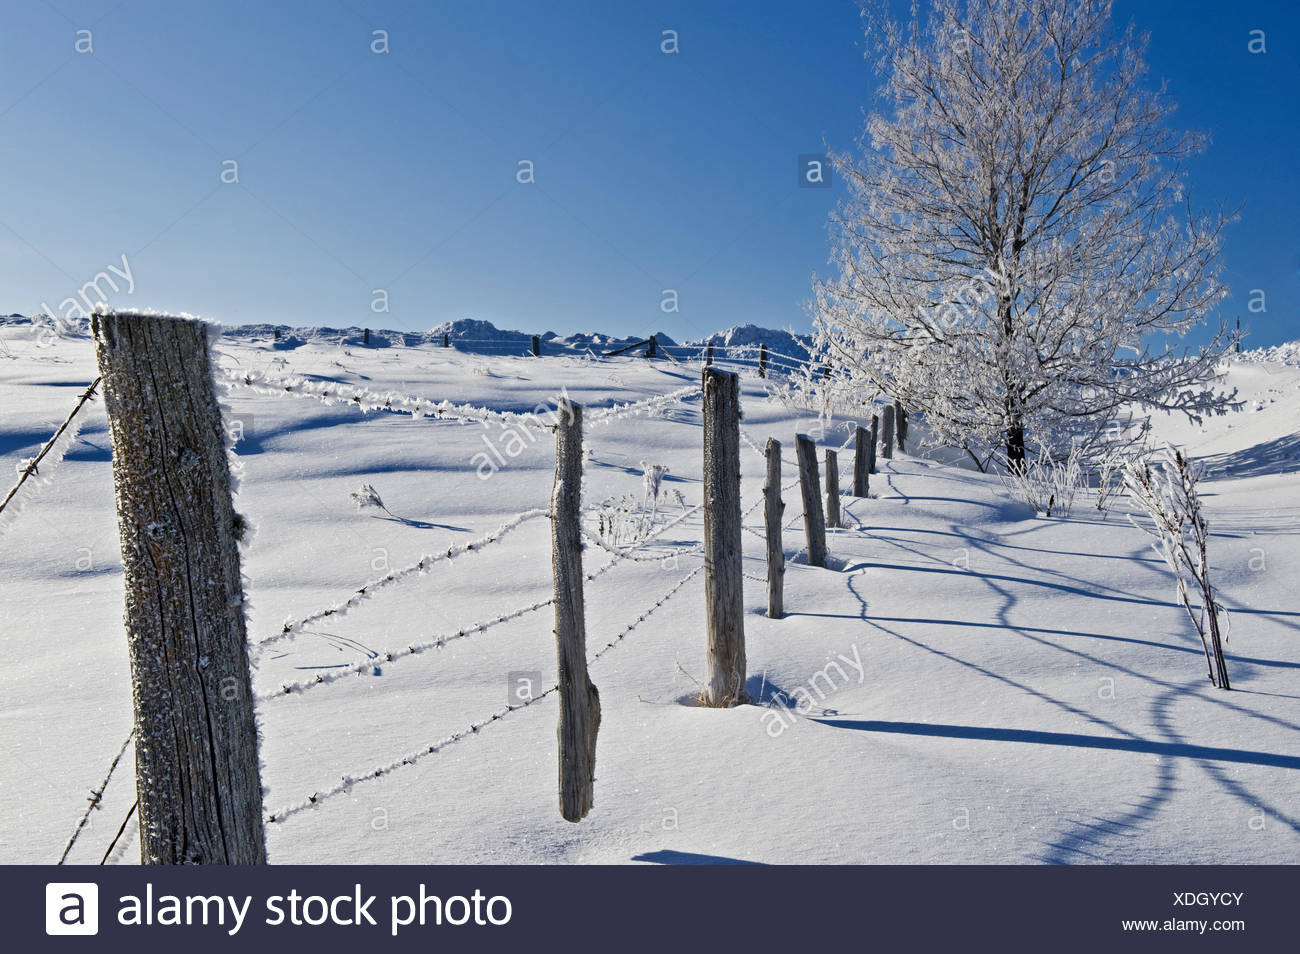 Fence and hoarfrost on tree, near Bourget, Ontario, Canada - Stock Image